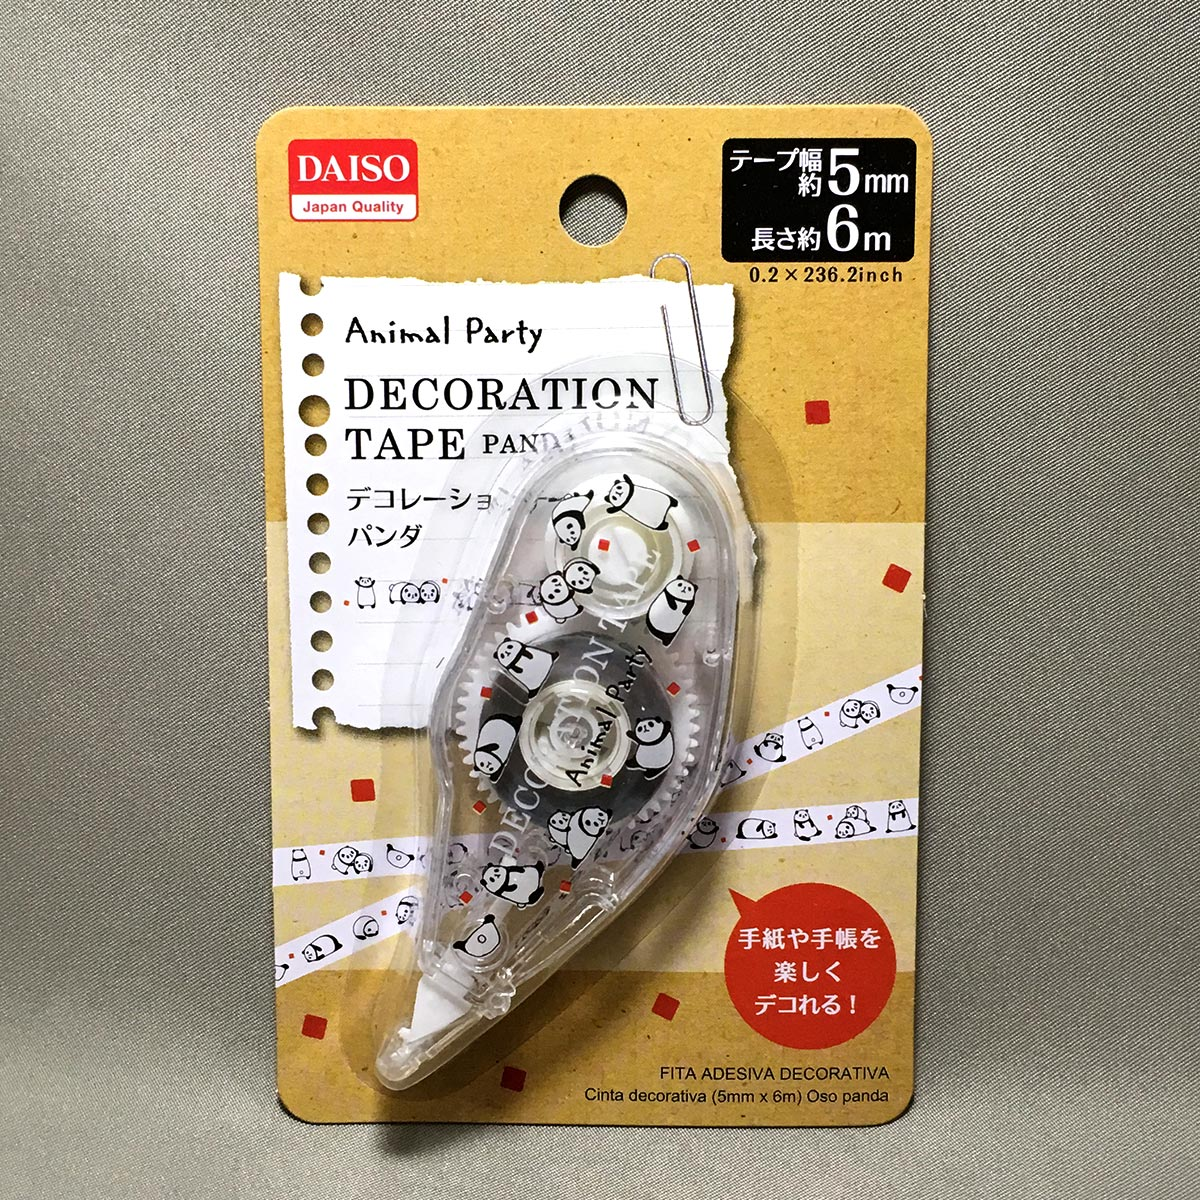 Panda Decoration Tape - Front packaging